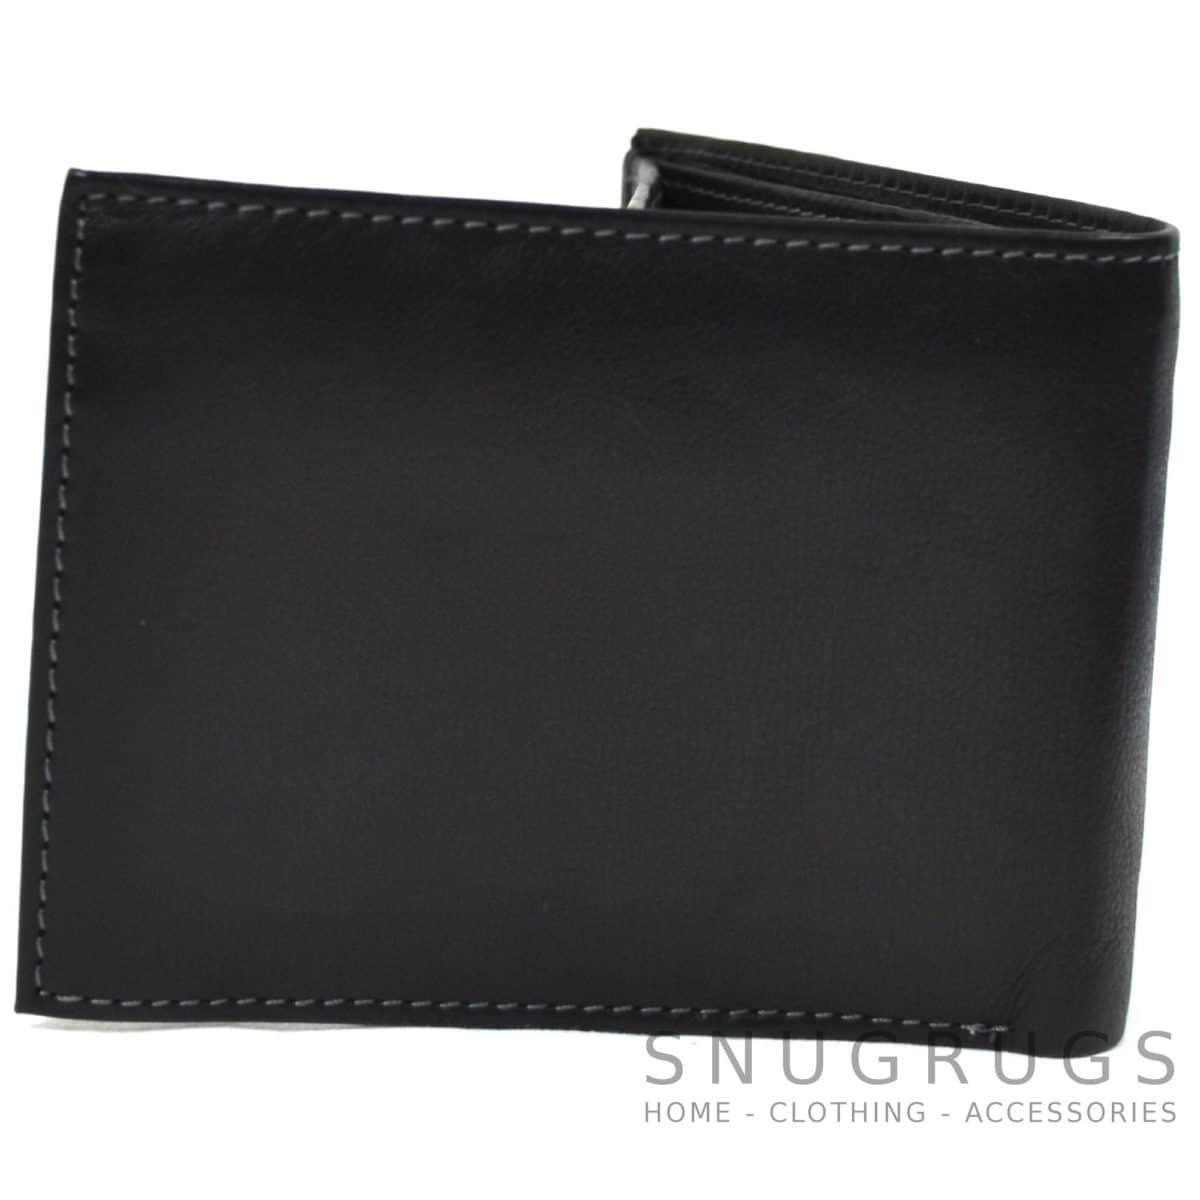 Mark - Genuine Leather Bi-Fold Wallet - Black